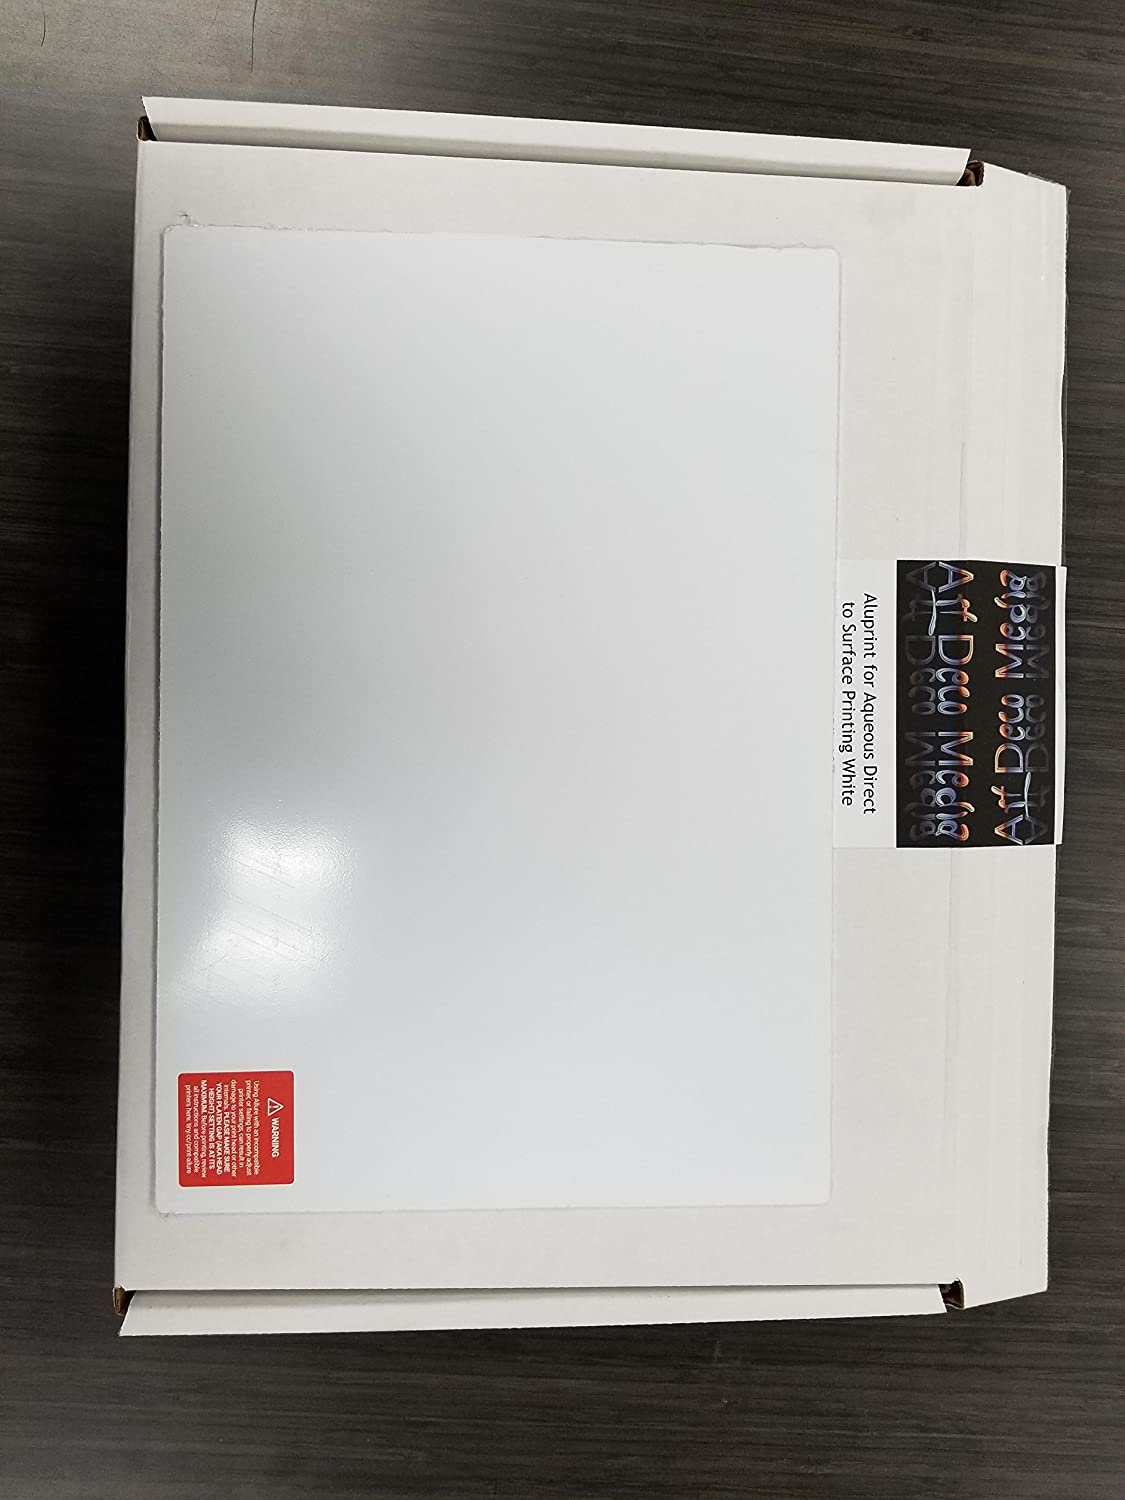 20x30 Trim size Pack of 5 ArtDeco Aluminum Plate for Aqueous Direct to Surface Printing White Matte in 21x31